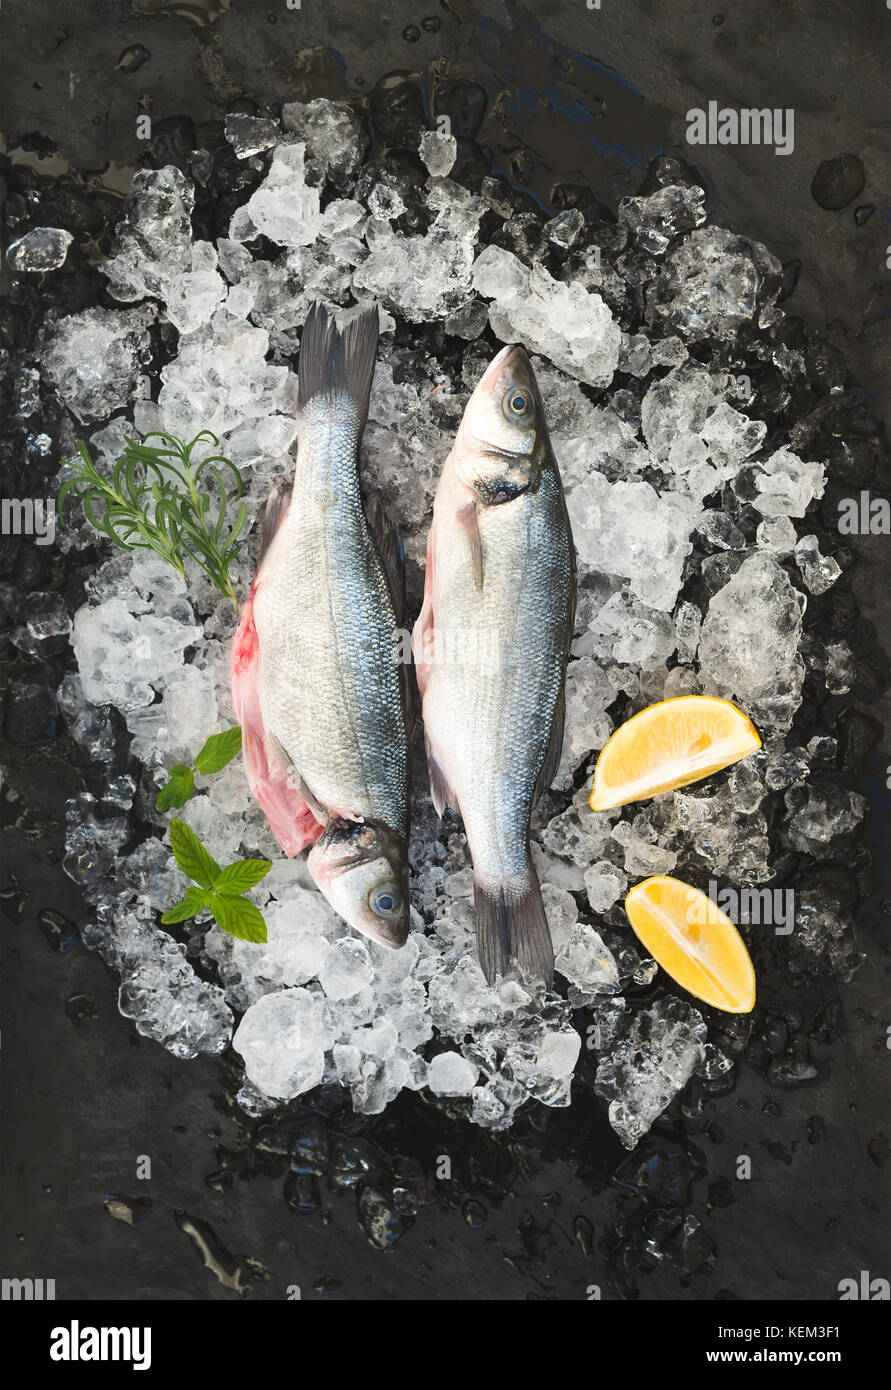 Raw seabass with lemon and rosemary on chipped ice over dark stone backdrop, top view - Stock Image